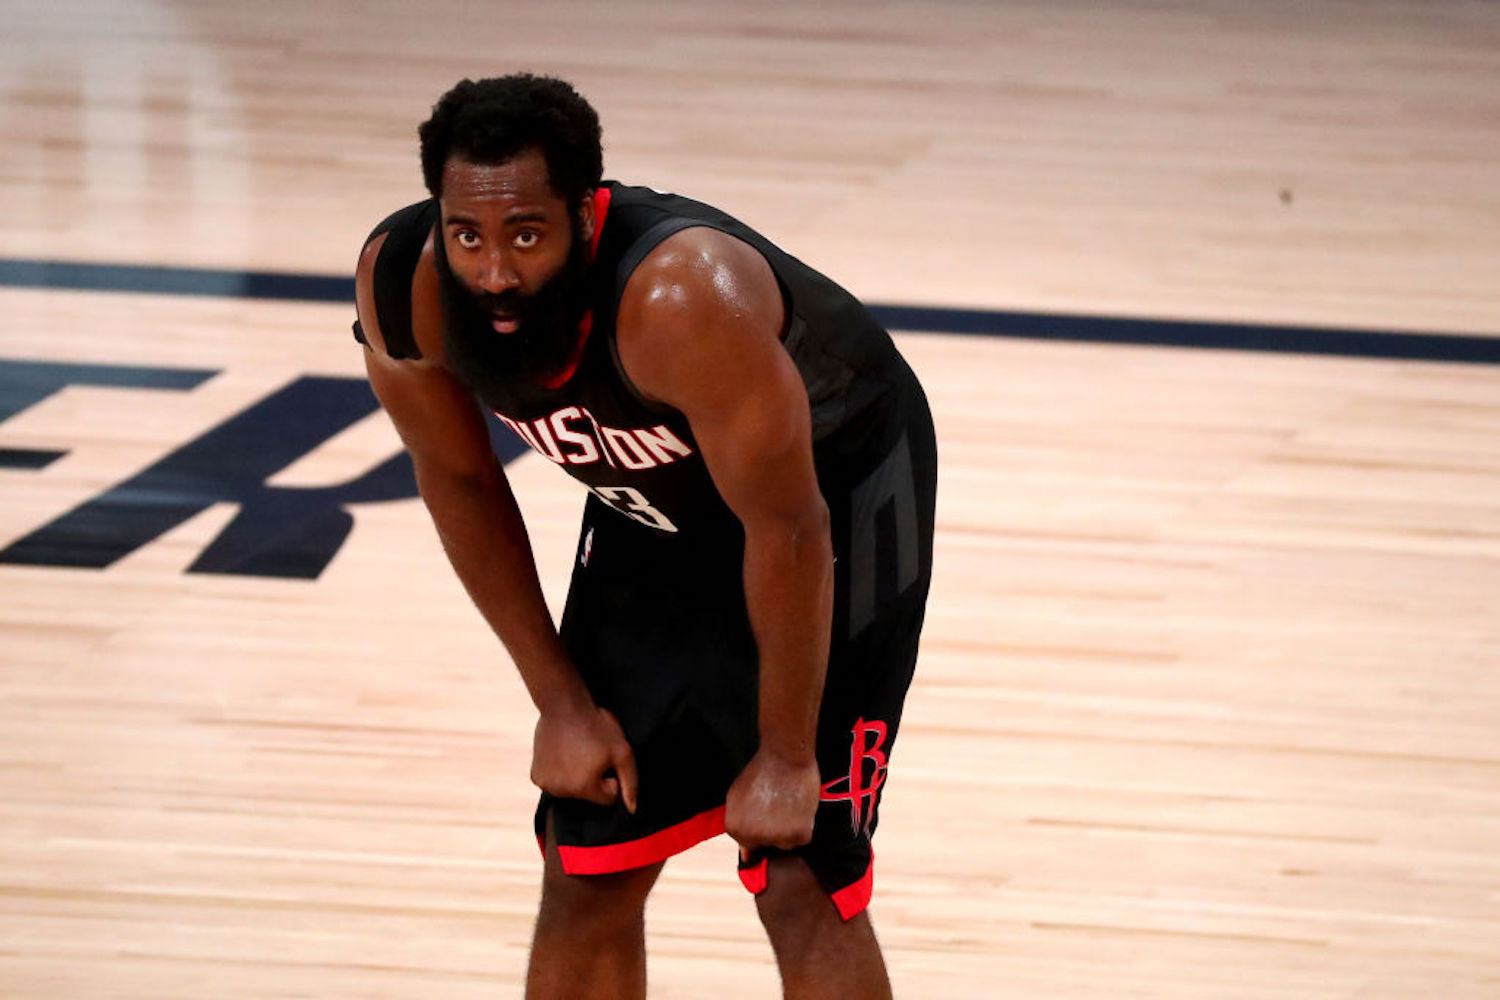 James Harden clearly wants out of Houston, and he recently told the Rockets he'd be open to a trade to the Philadelphia 76ers.